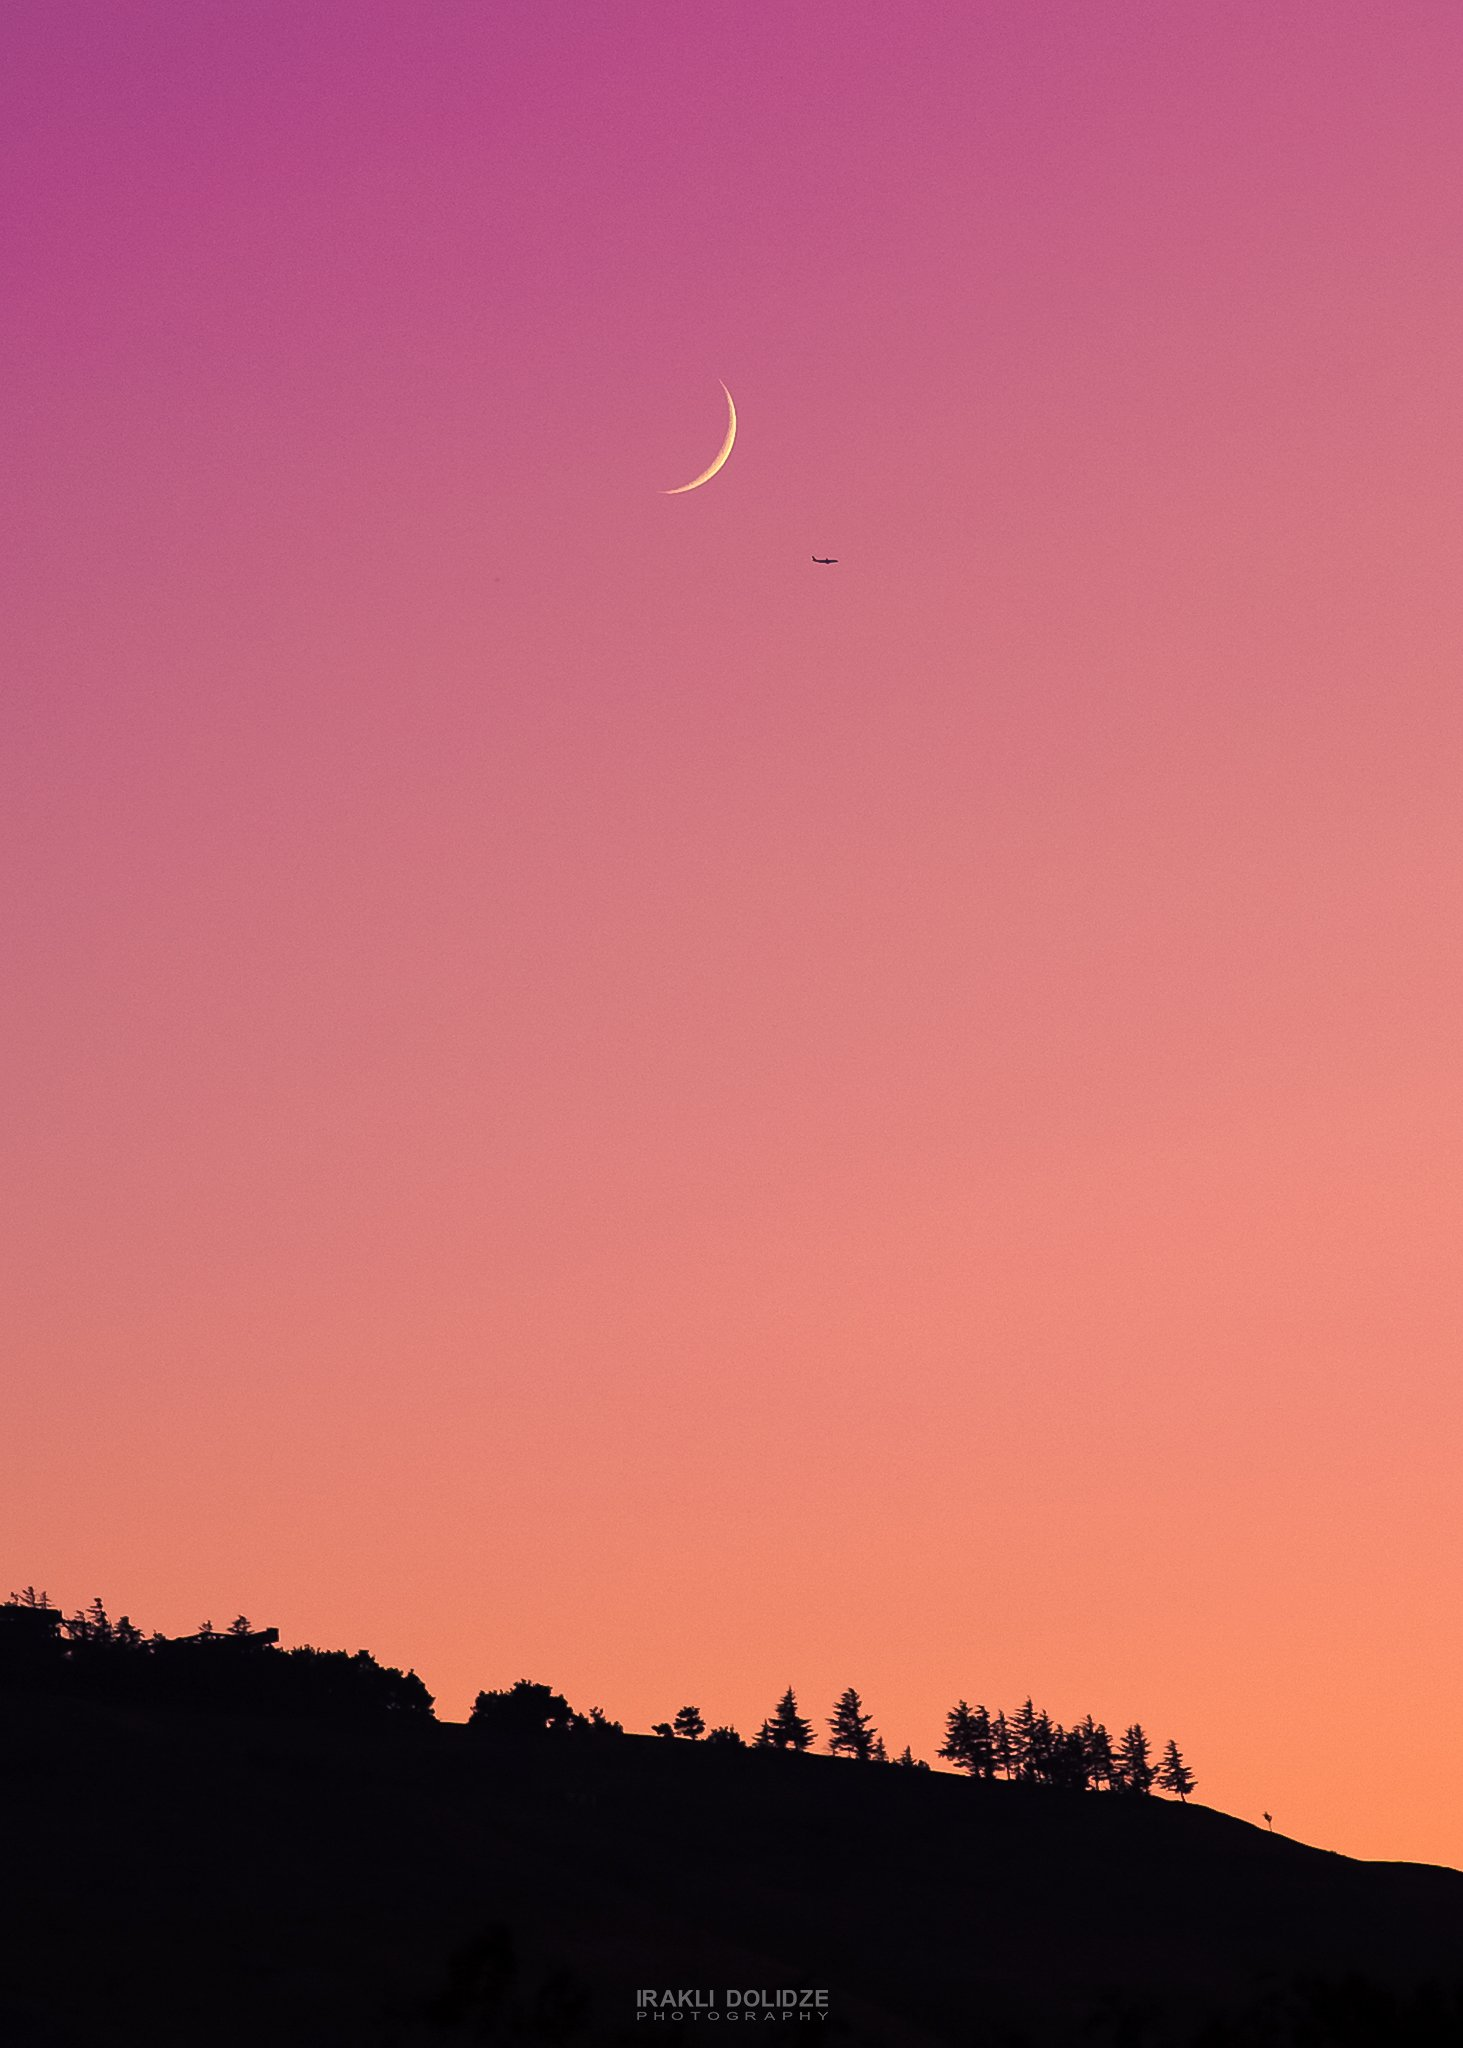 moon, plane, landscape, sunset, trees, violet, color,, ირაკლი დოლიძე